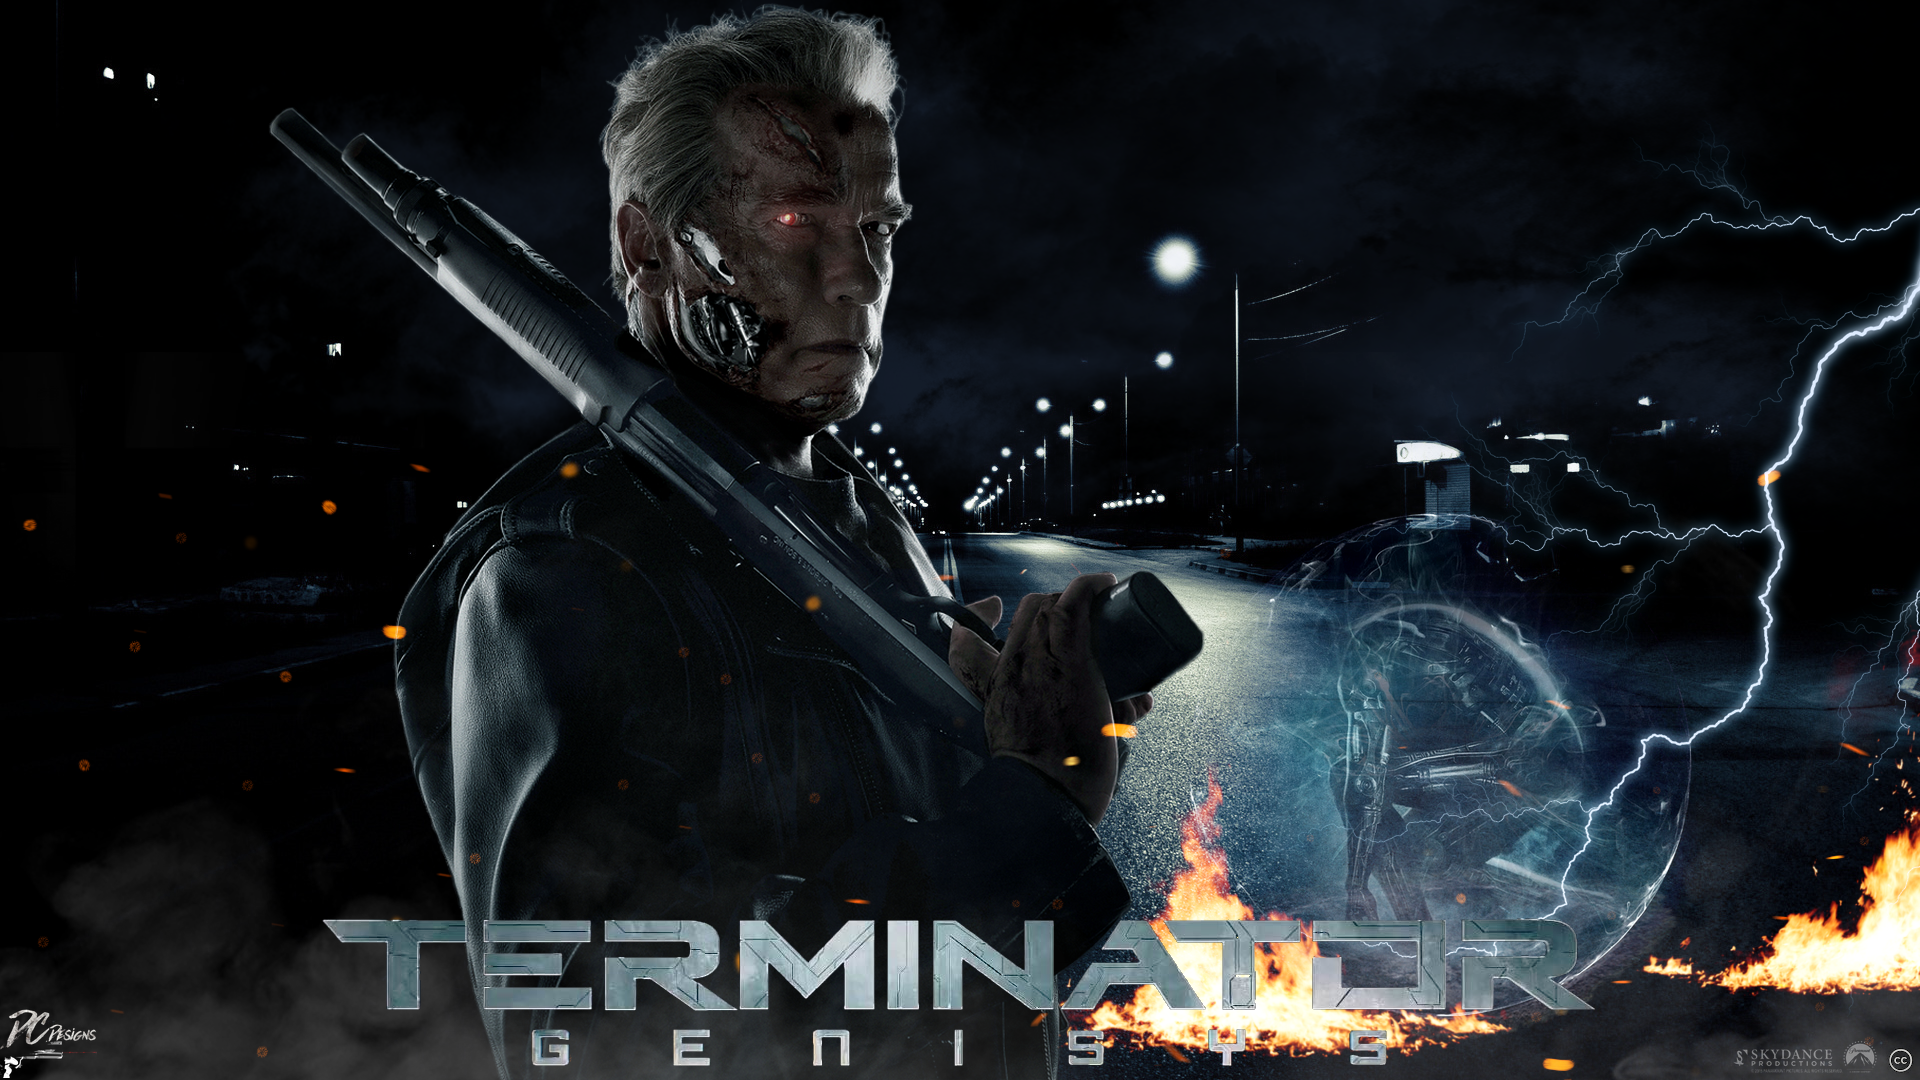 35 Terminator Genisys HD Wallpapers Background Images 1920x1080